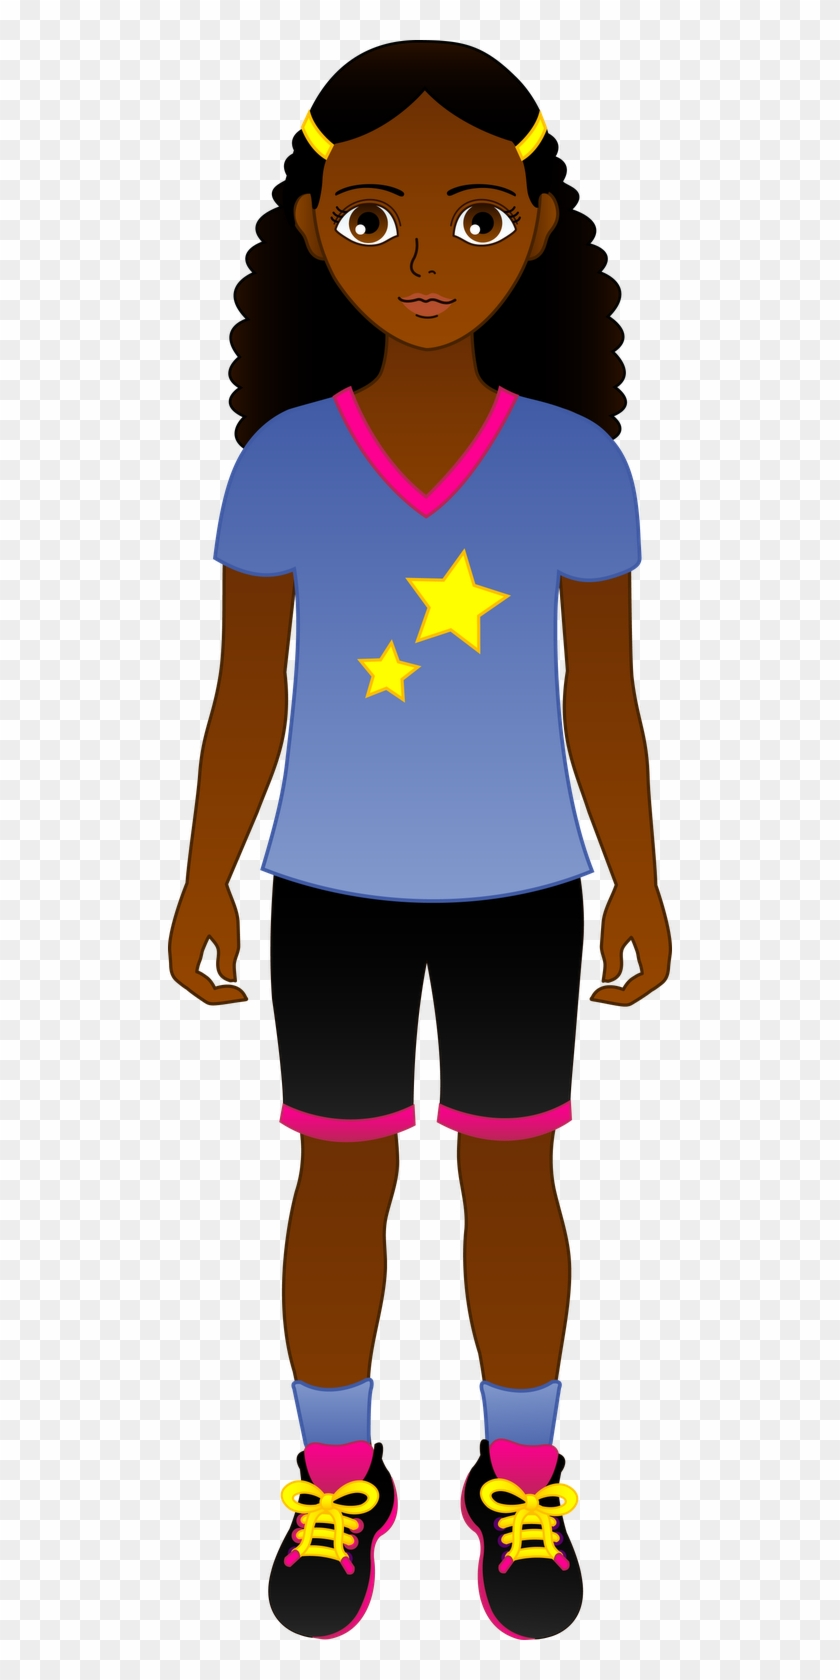 American Girl Doll Clipart At Getdrawings.